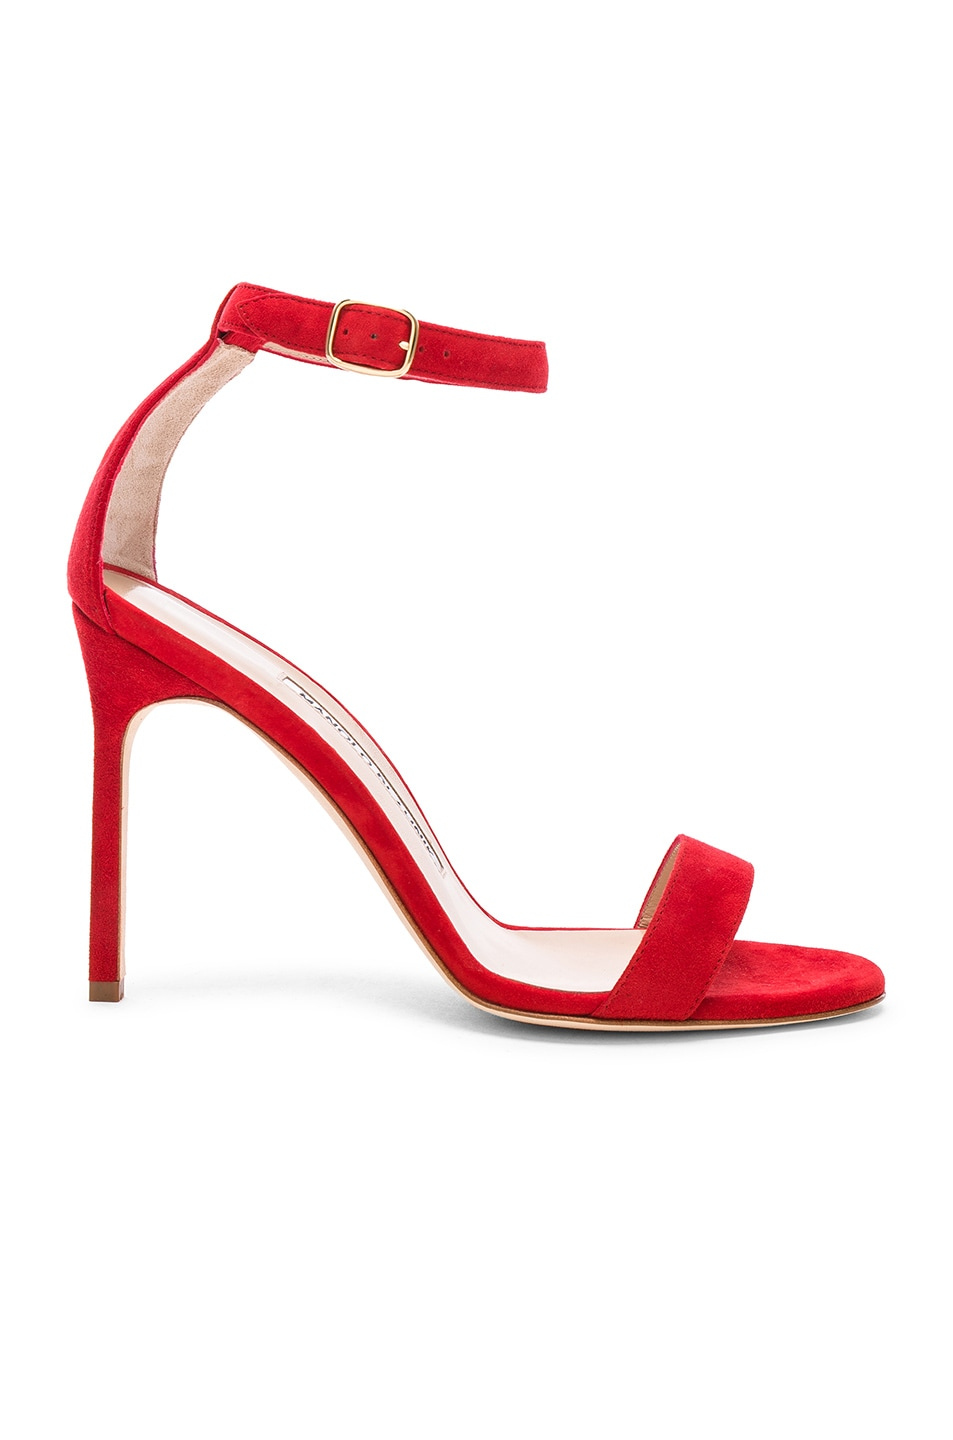 be3376e663ea4 Image 1 of Manolo Blahnik Suede Chaos 105 Sandals in Red Suede